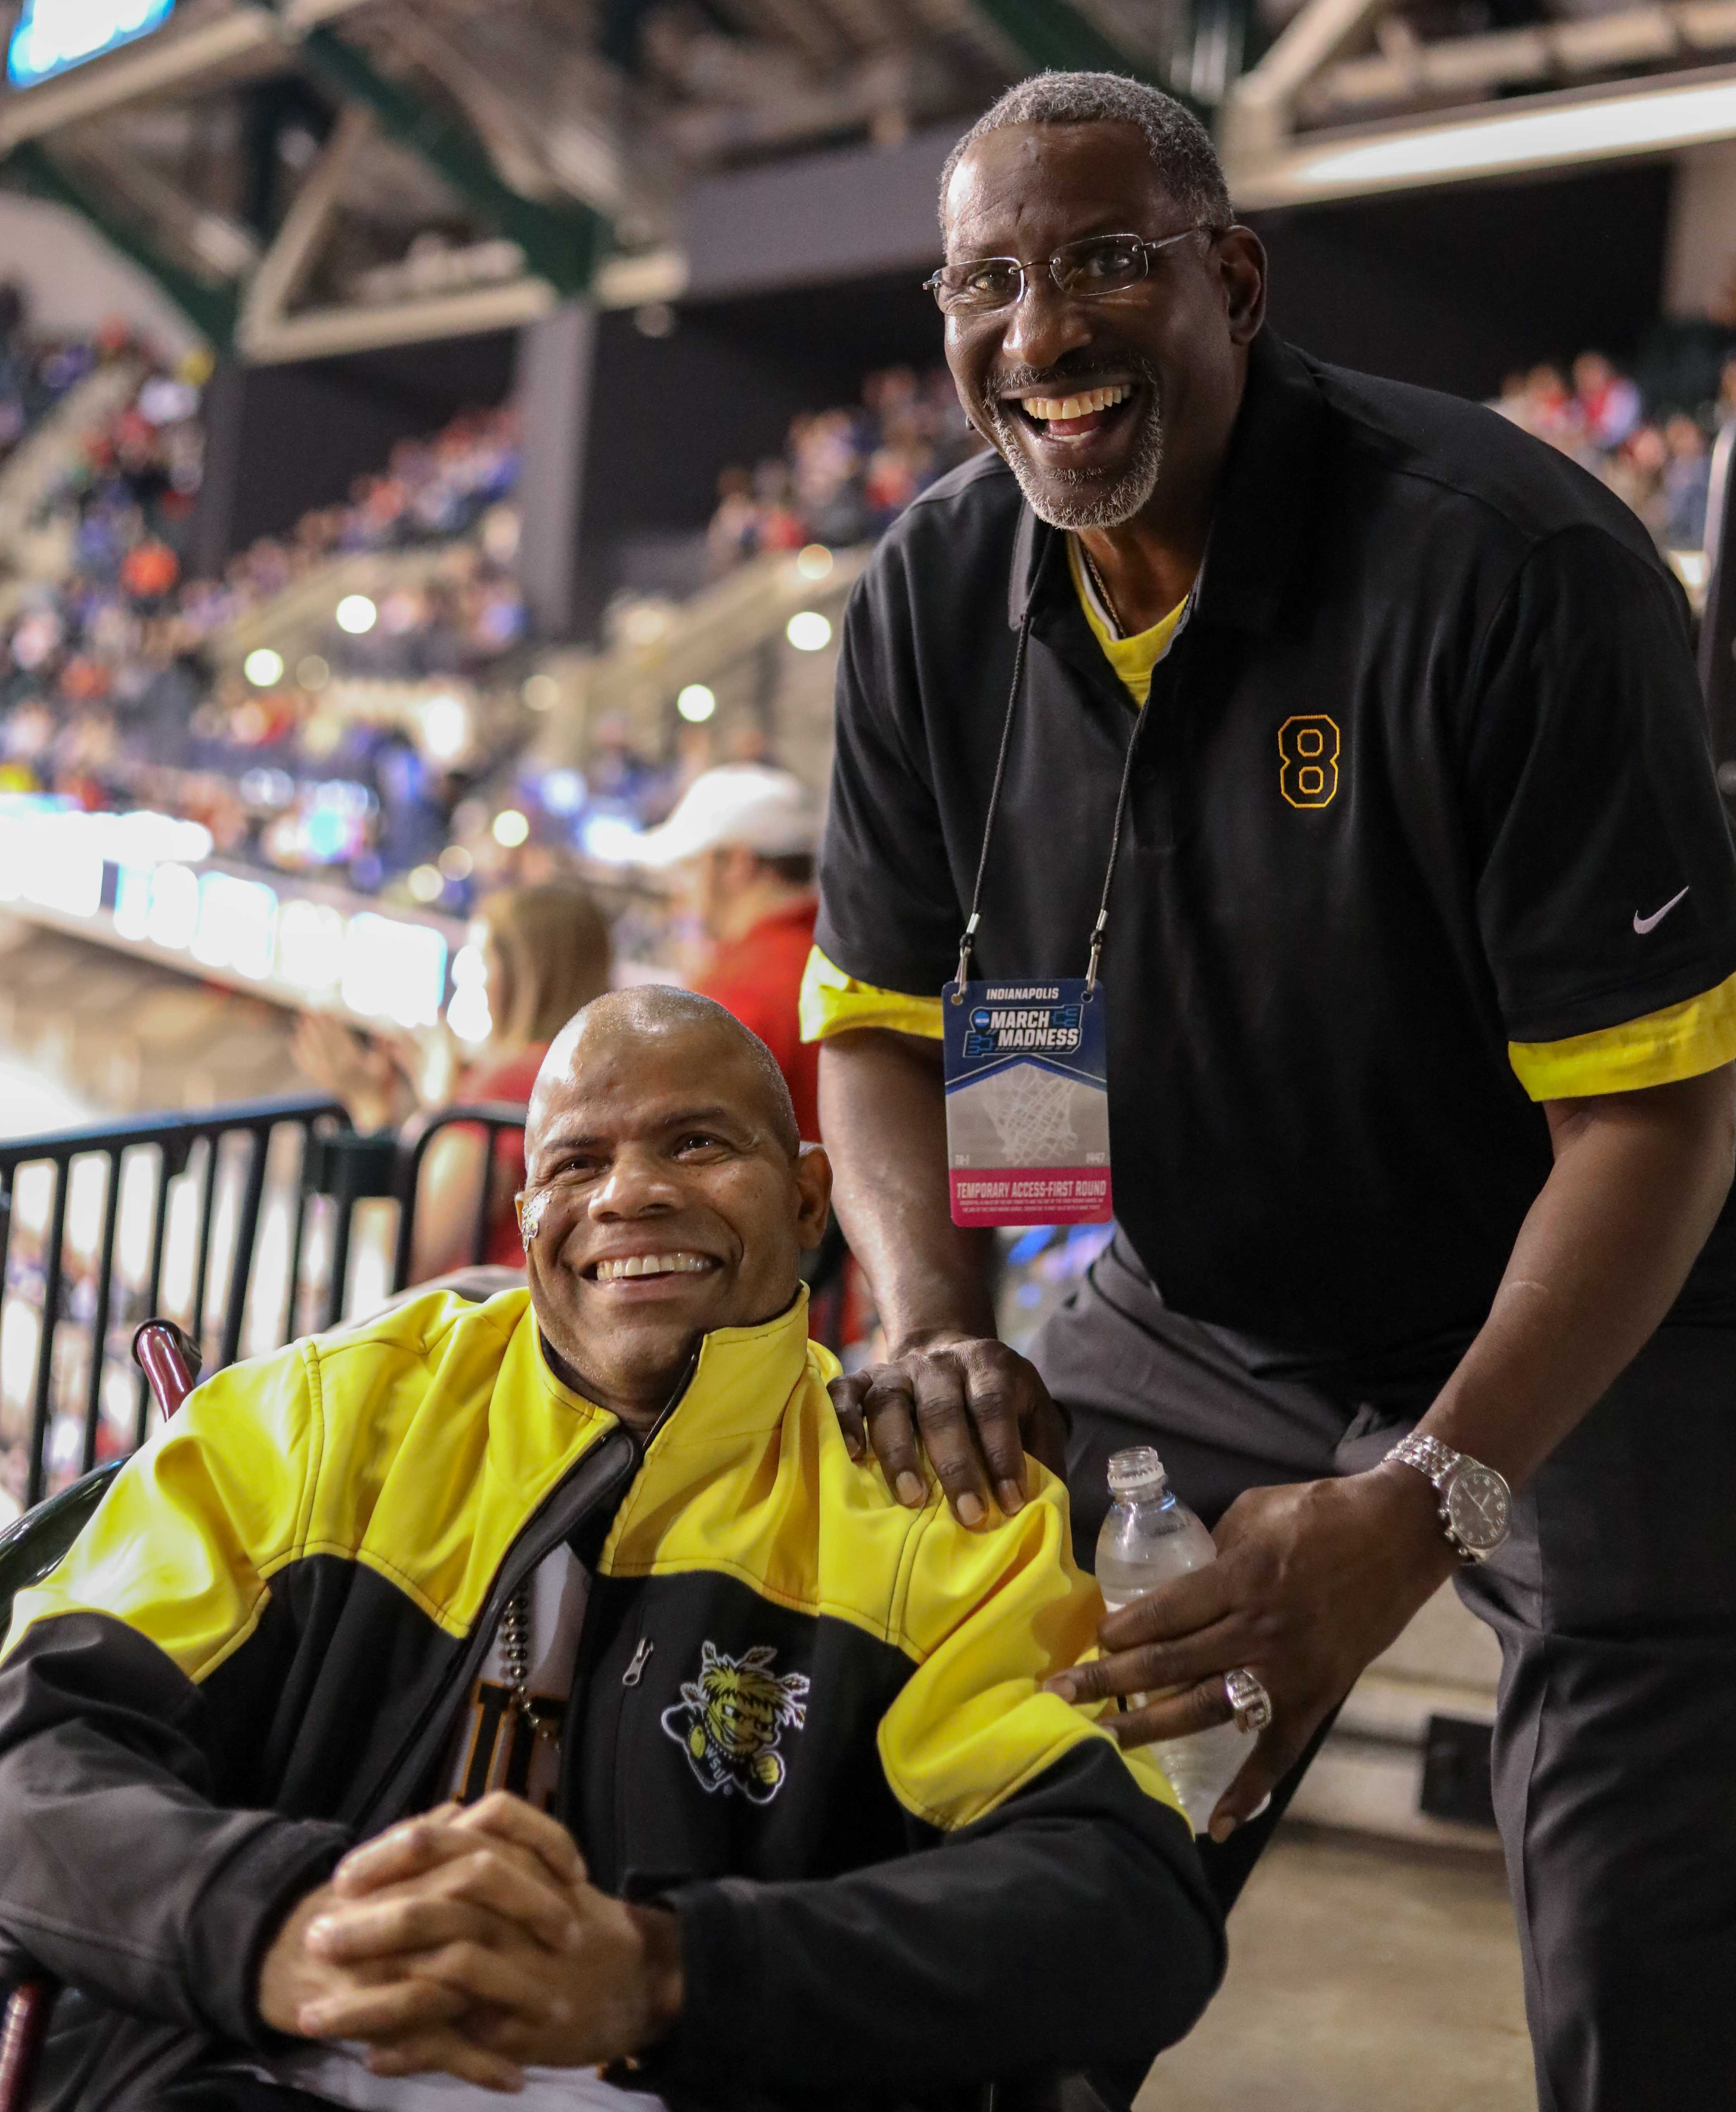 Cliff Levingston poses for a photo with long time fan Darren Thomas. Levingston played basketball for Wichita State from 1979-1982  before being drafted by the Detroit Pistons in 1982.